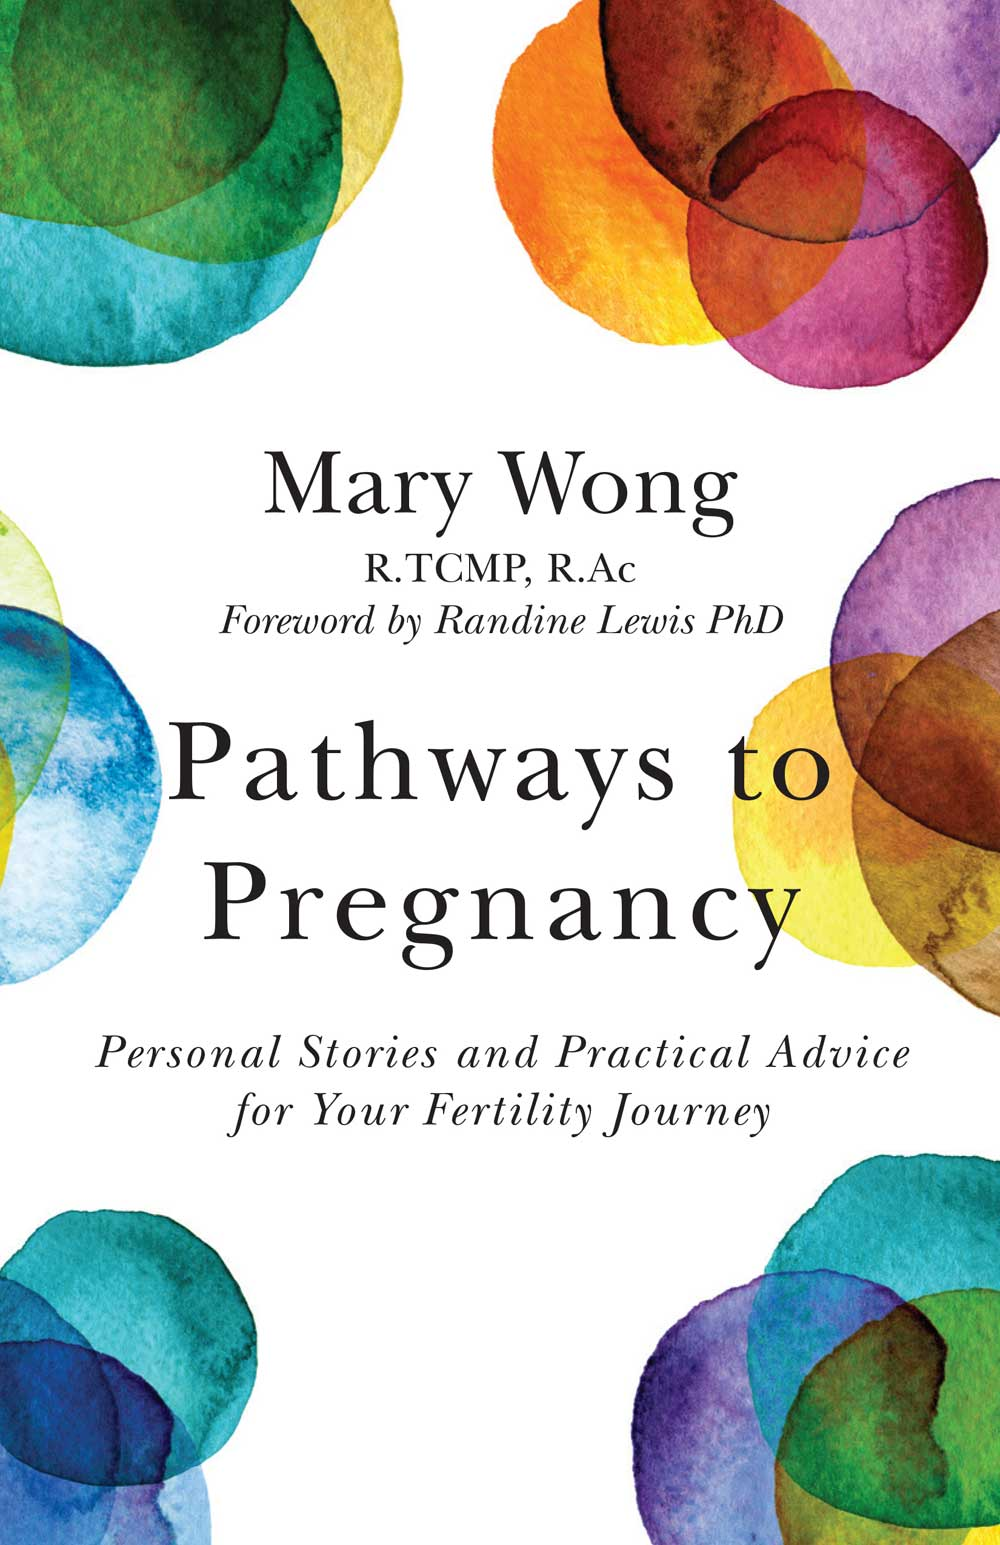 Pathways-to-pregnancy-book-cover_1000